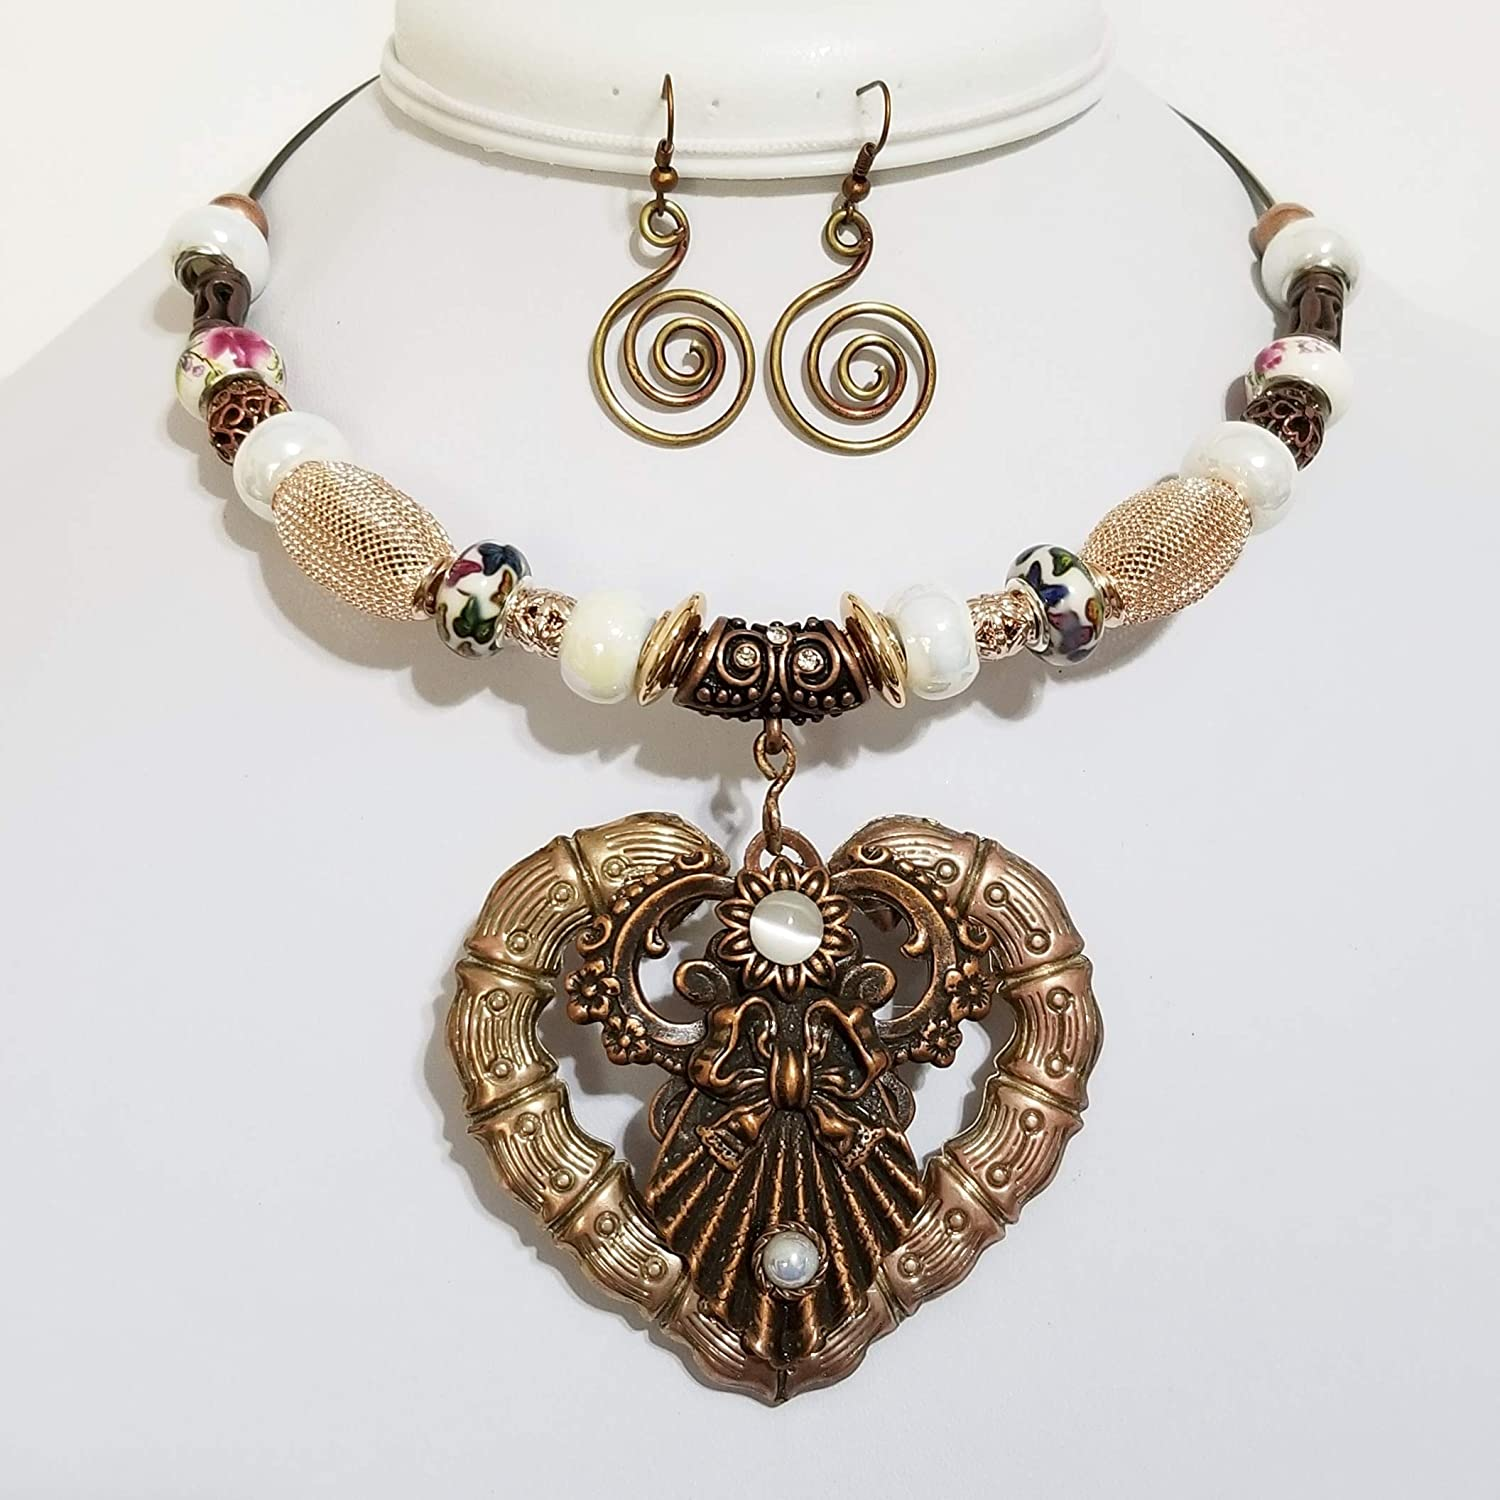 Heart Shaped Pendant Necklace One of a Kind Jewelry